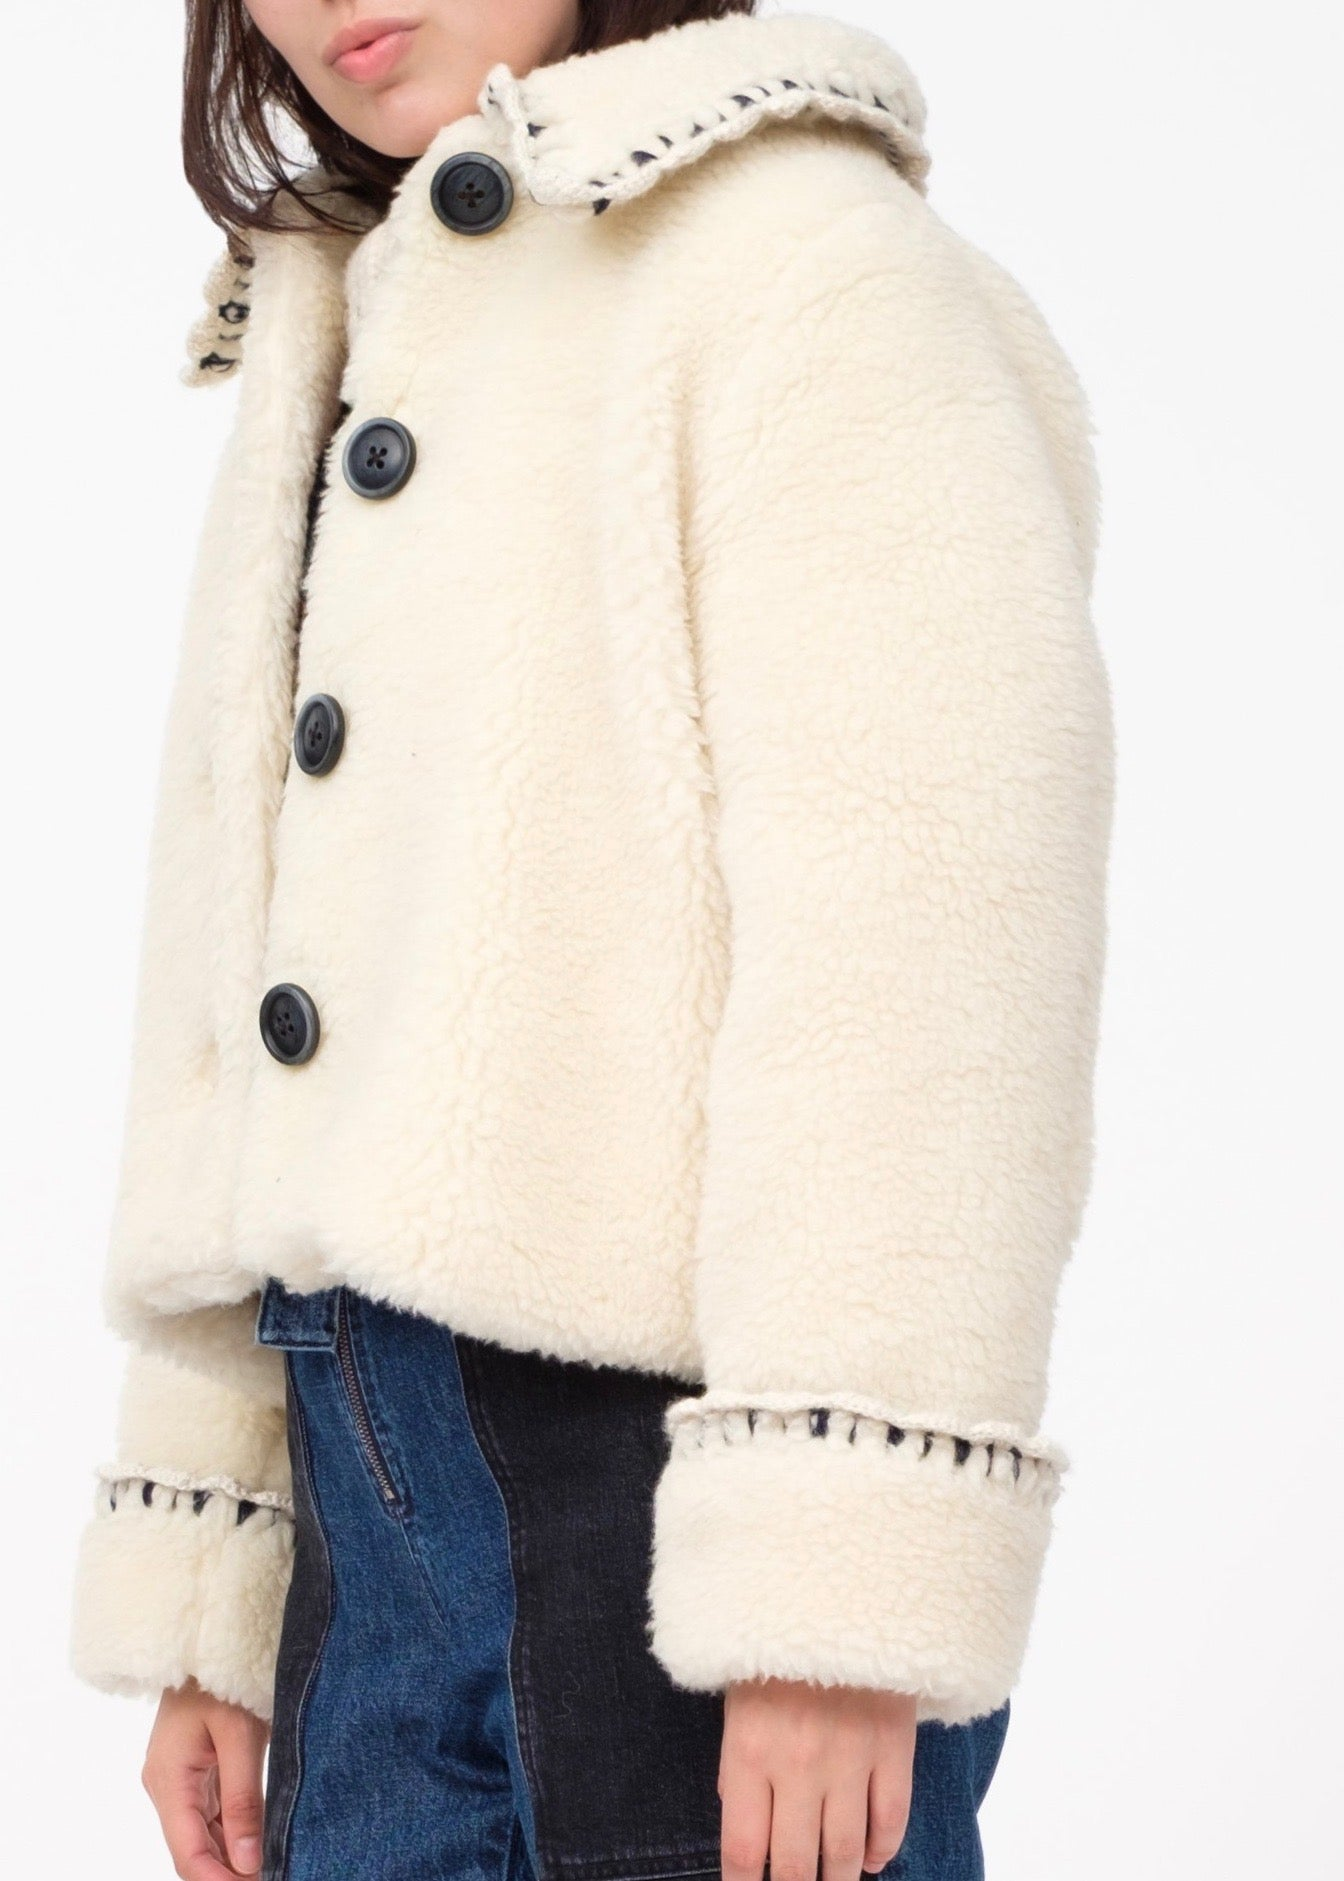 Sea Madeline novelty stitch boxy faux fur coat in cream